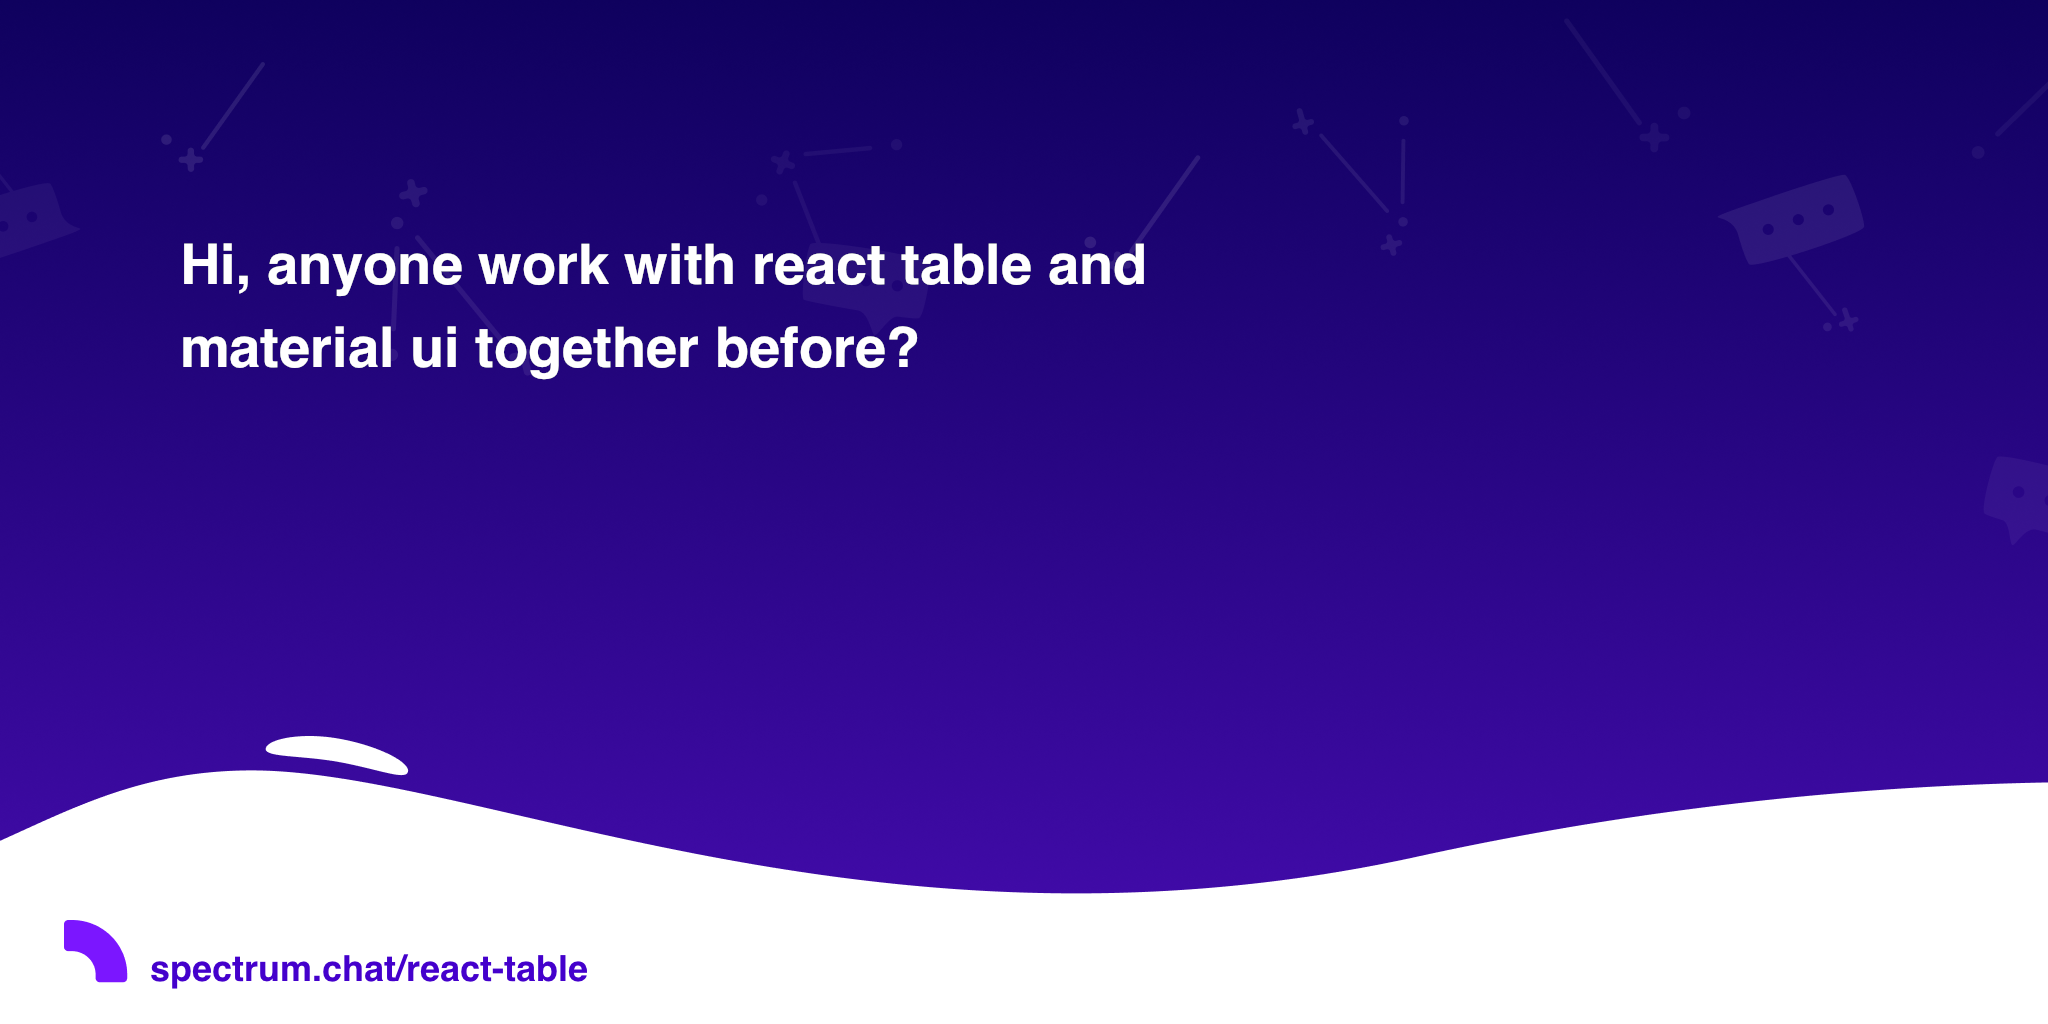 Hi, anyone work with react table and material ui together